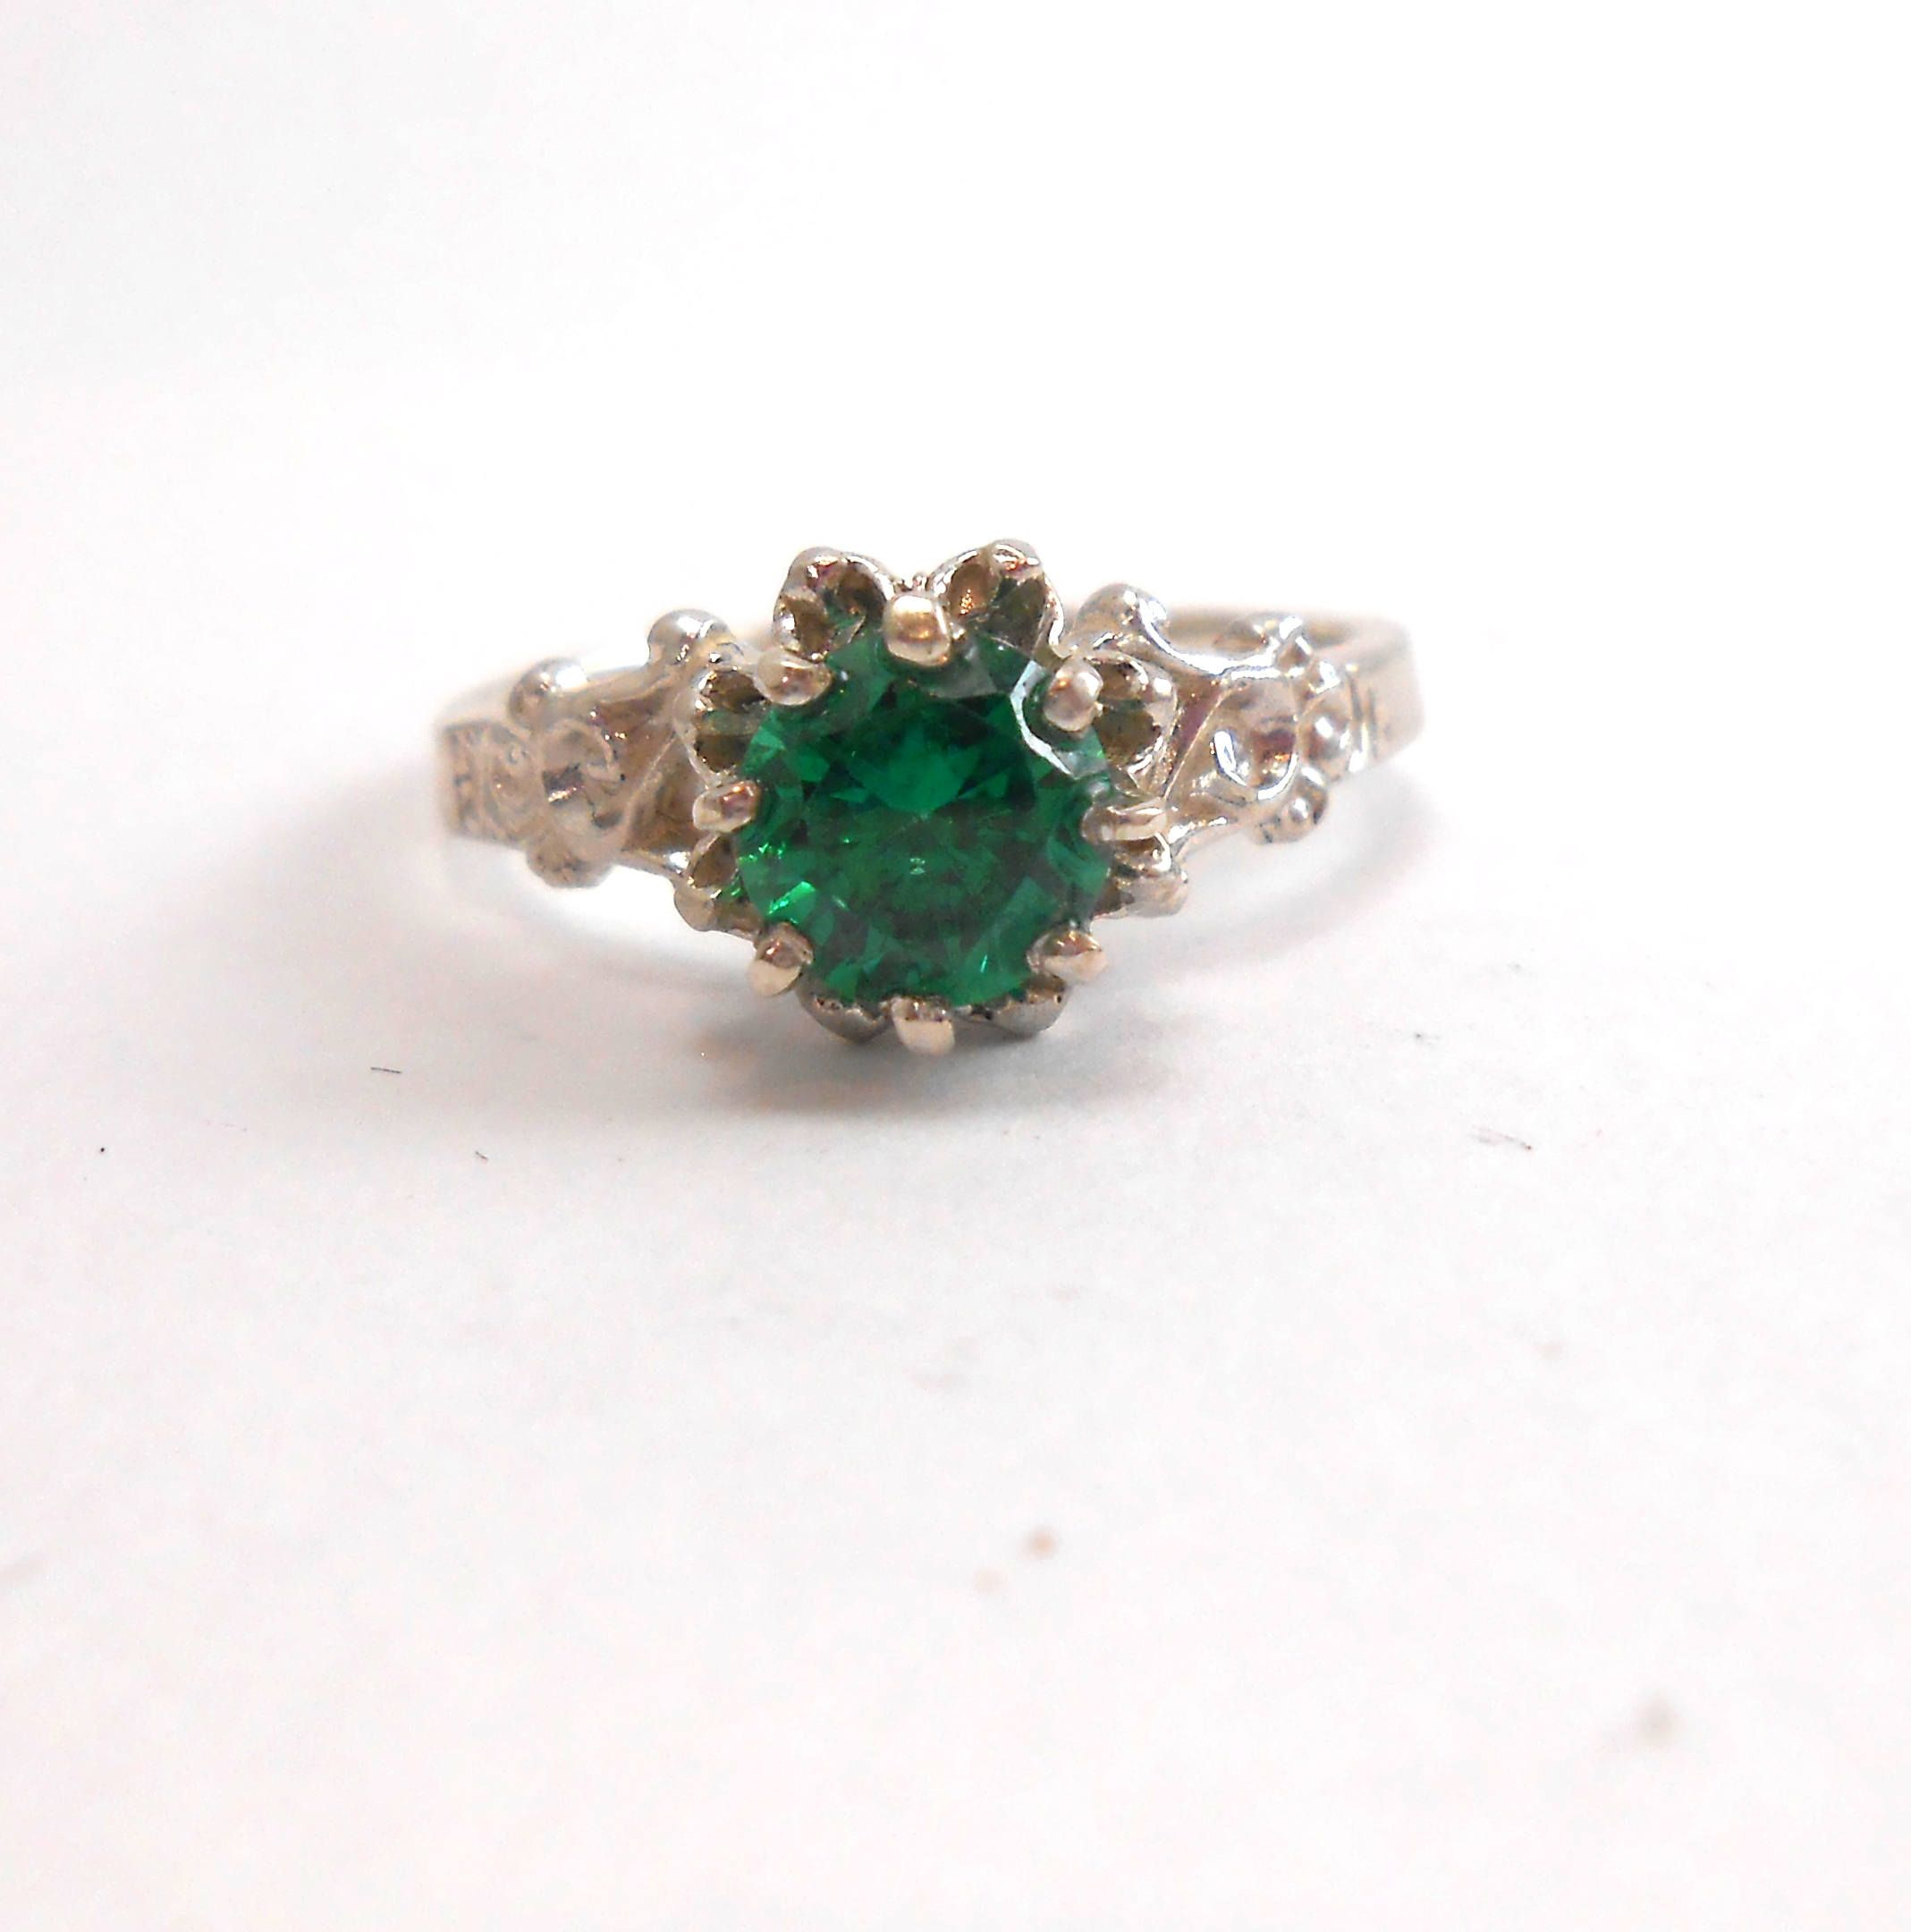 emerald dark color ori etsy green com gemstone details ring now stackable rings buy from